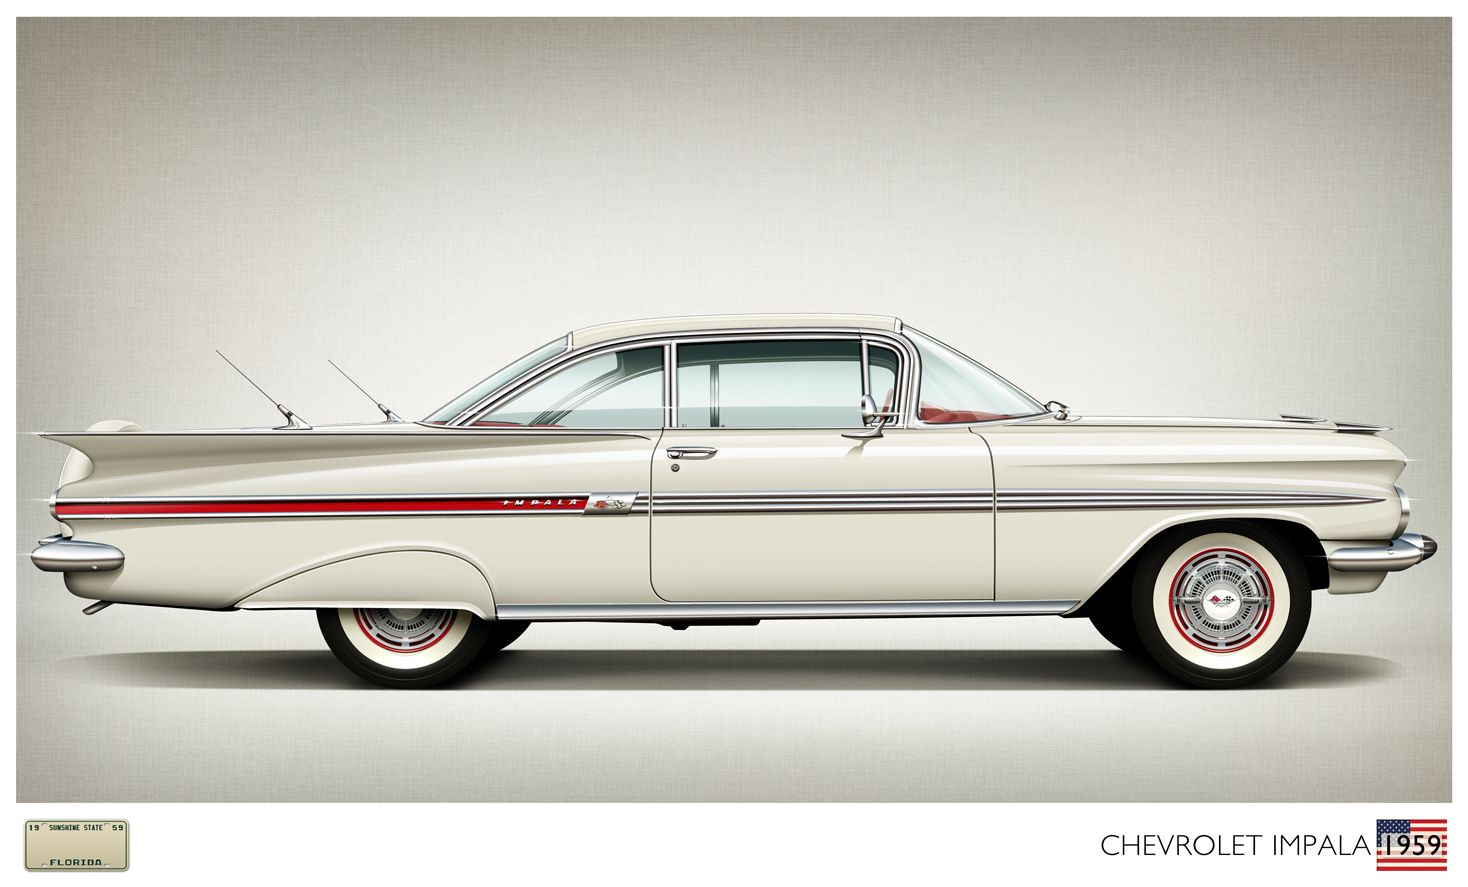 This 1959 #Chevrolet Impala was my very first car. I was 13 years ...